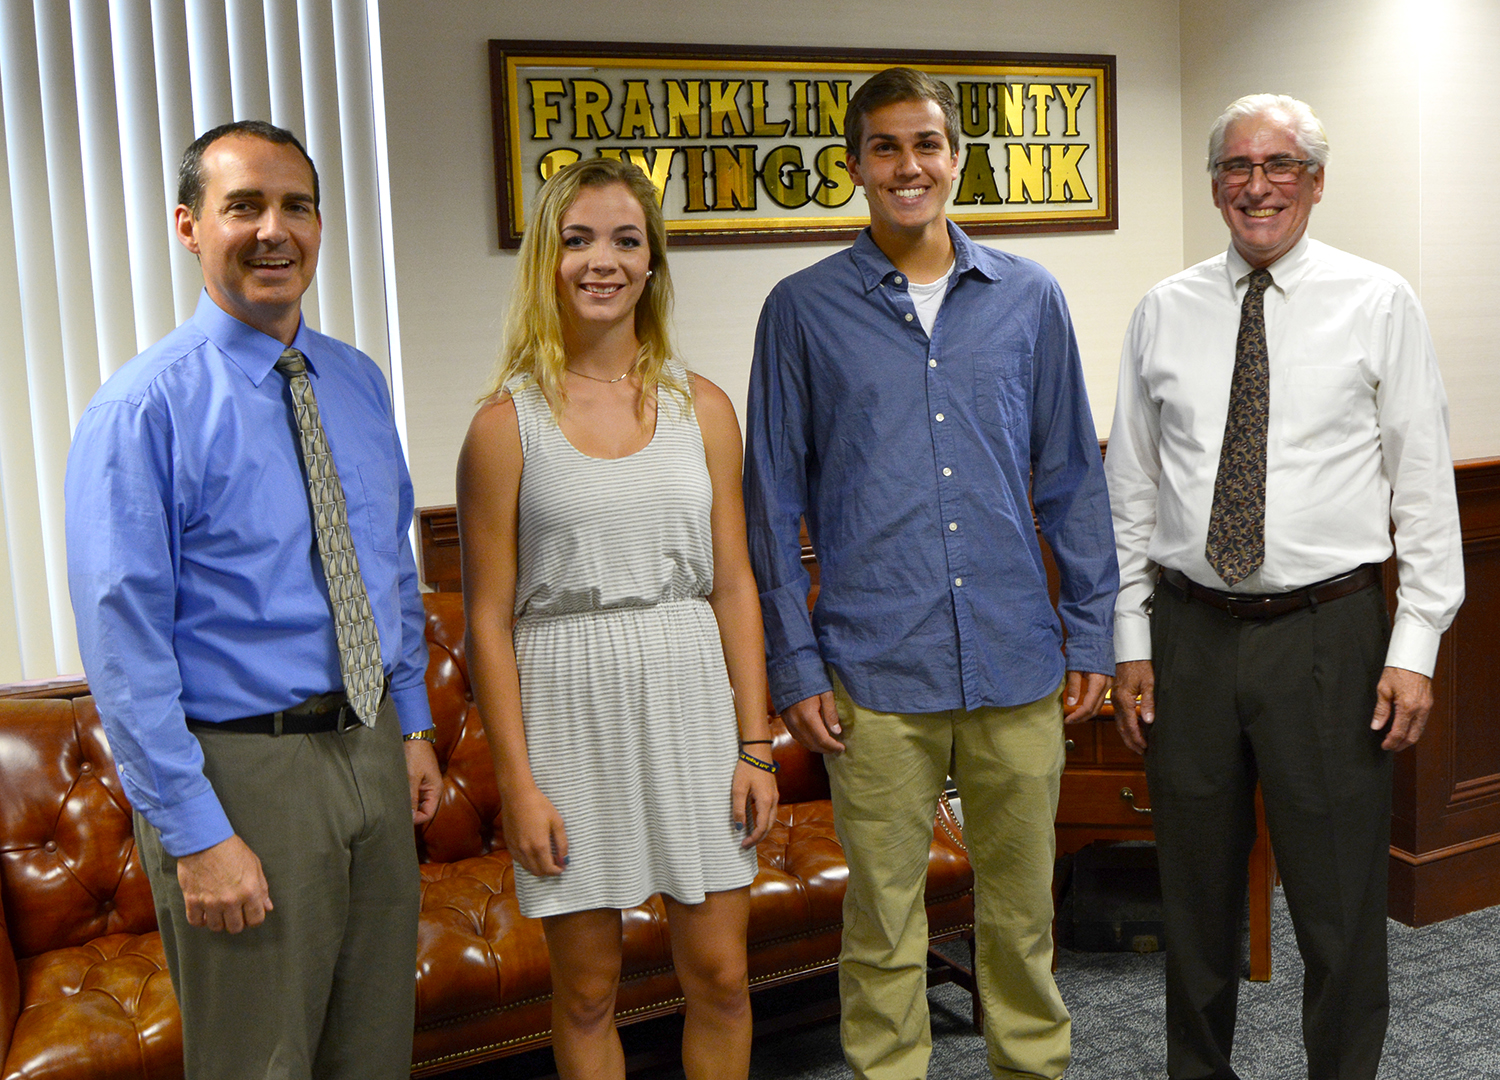 Mt. Blue High School graduates Caitlin Kane and Alexander Bunnell, flanked by FSB Executive Vice President Tim Thompson and President Peter Judkins.